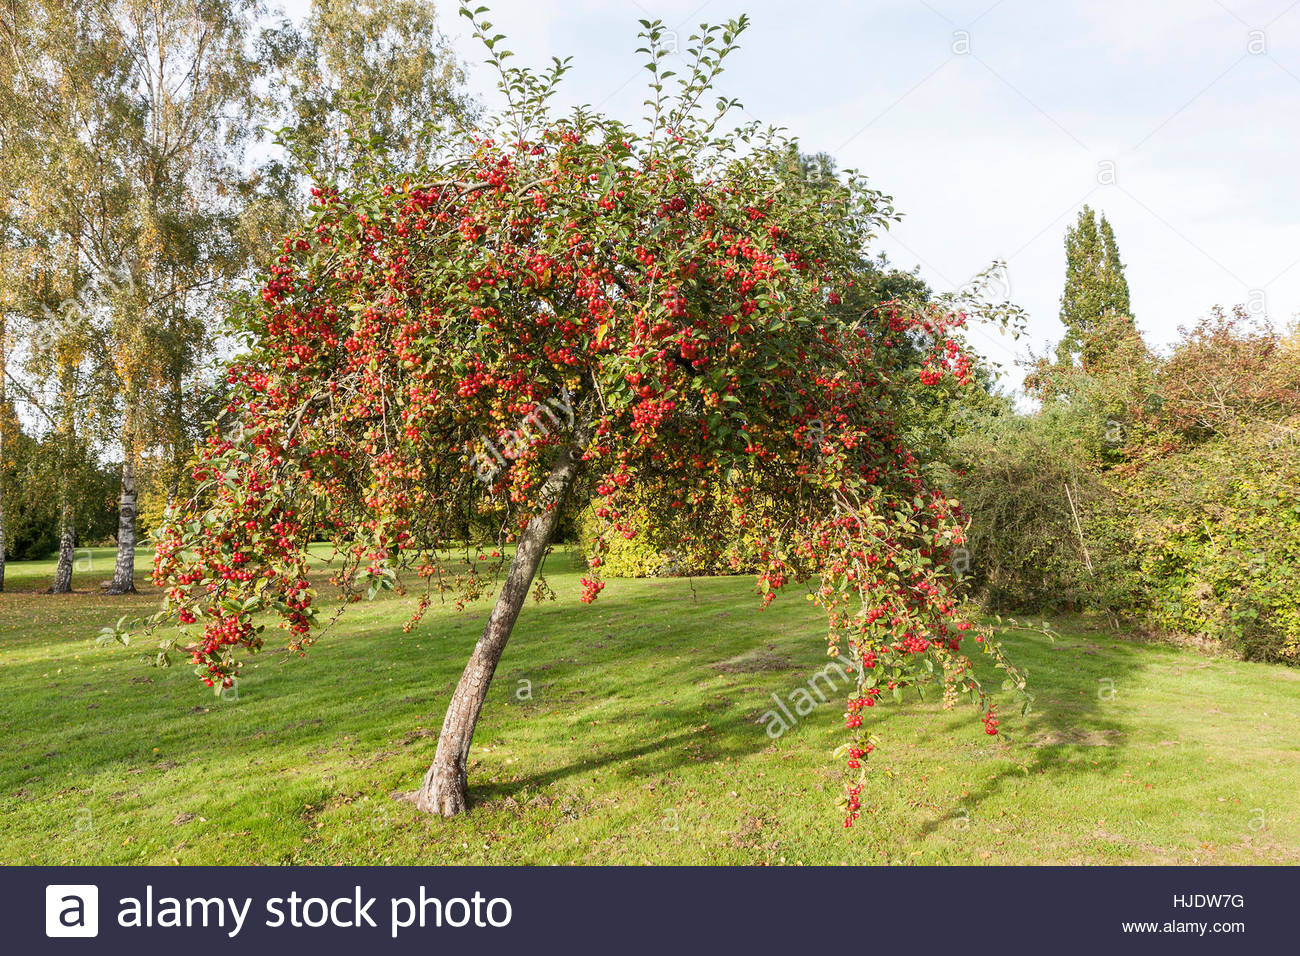 malus 39 red sentinel 39 crabapple stock photo 131841572 alamy. Black Bedroom Furniture Sets. Home Design Ideas